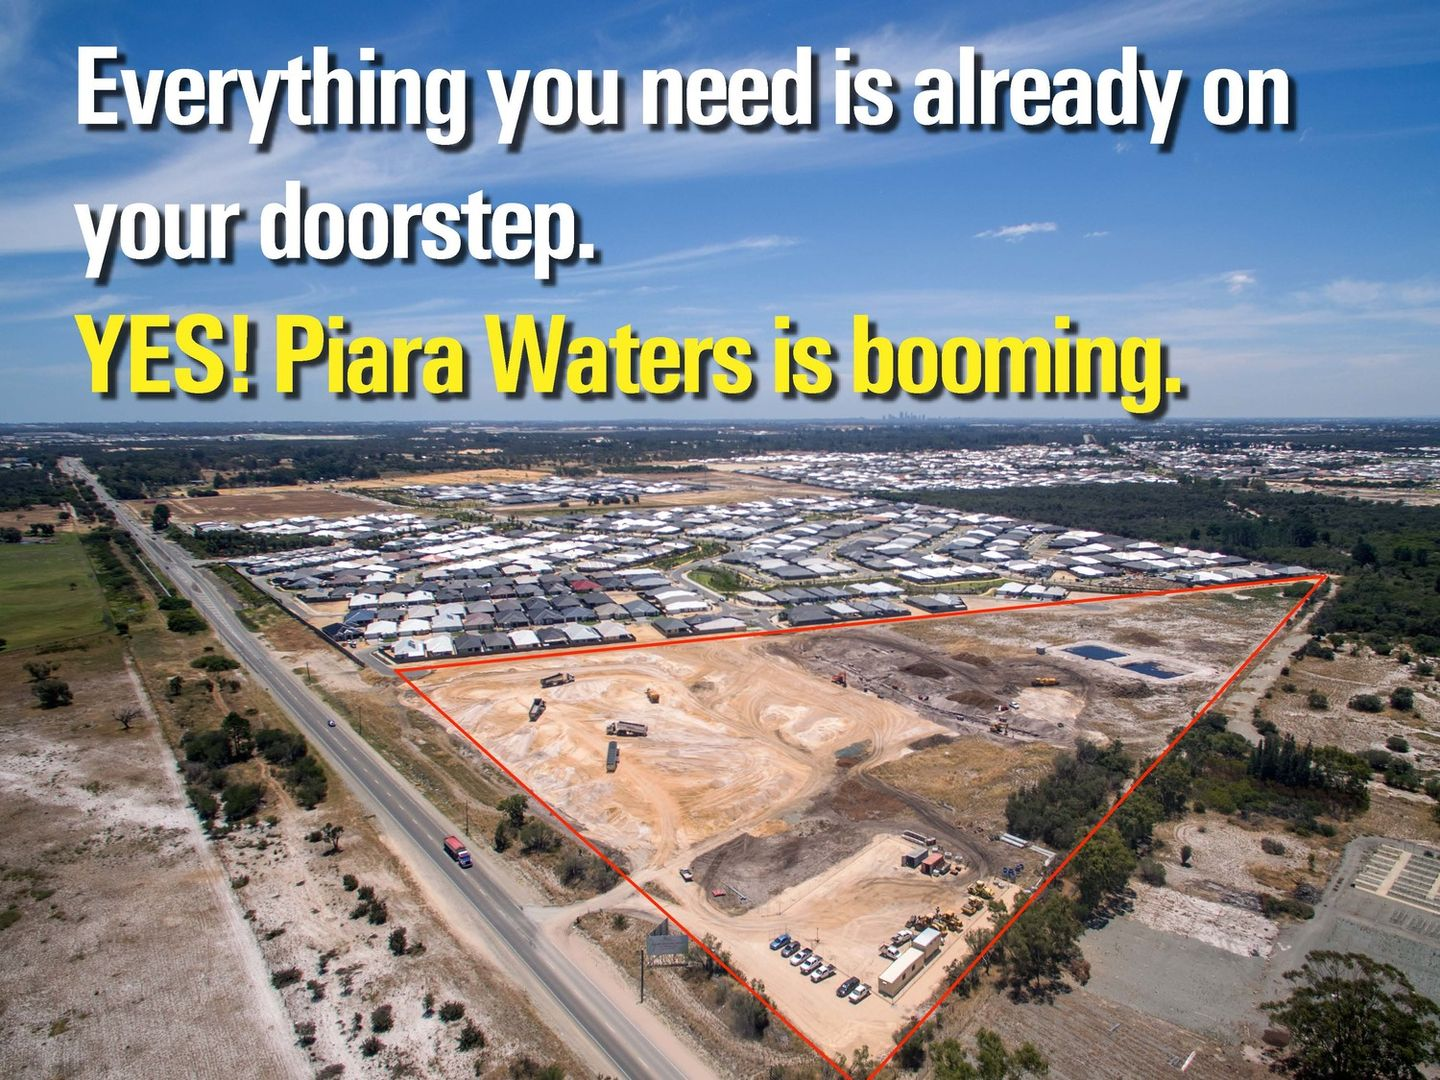 Lot 1772/14 Breccia Drive, Piara Waters WA 6112, Image 1